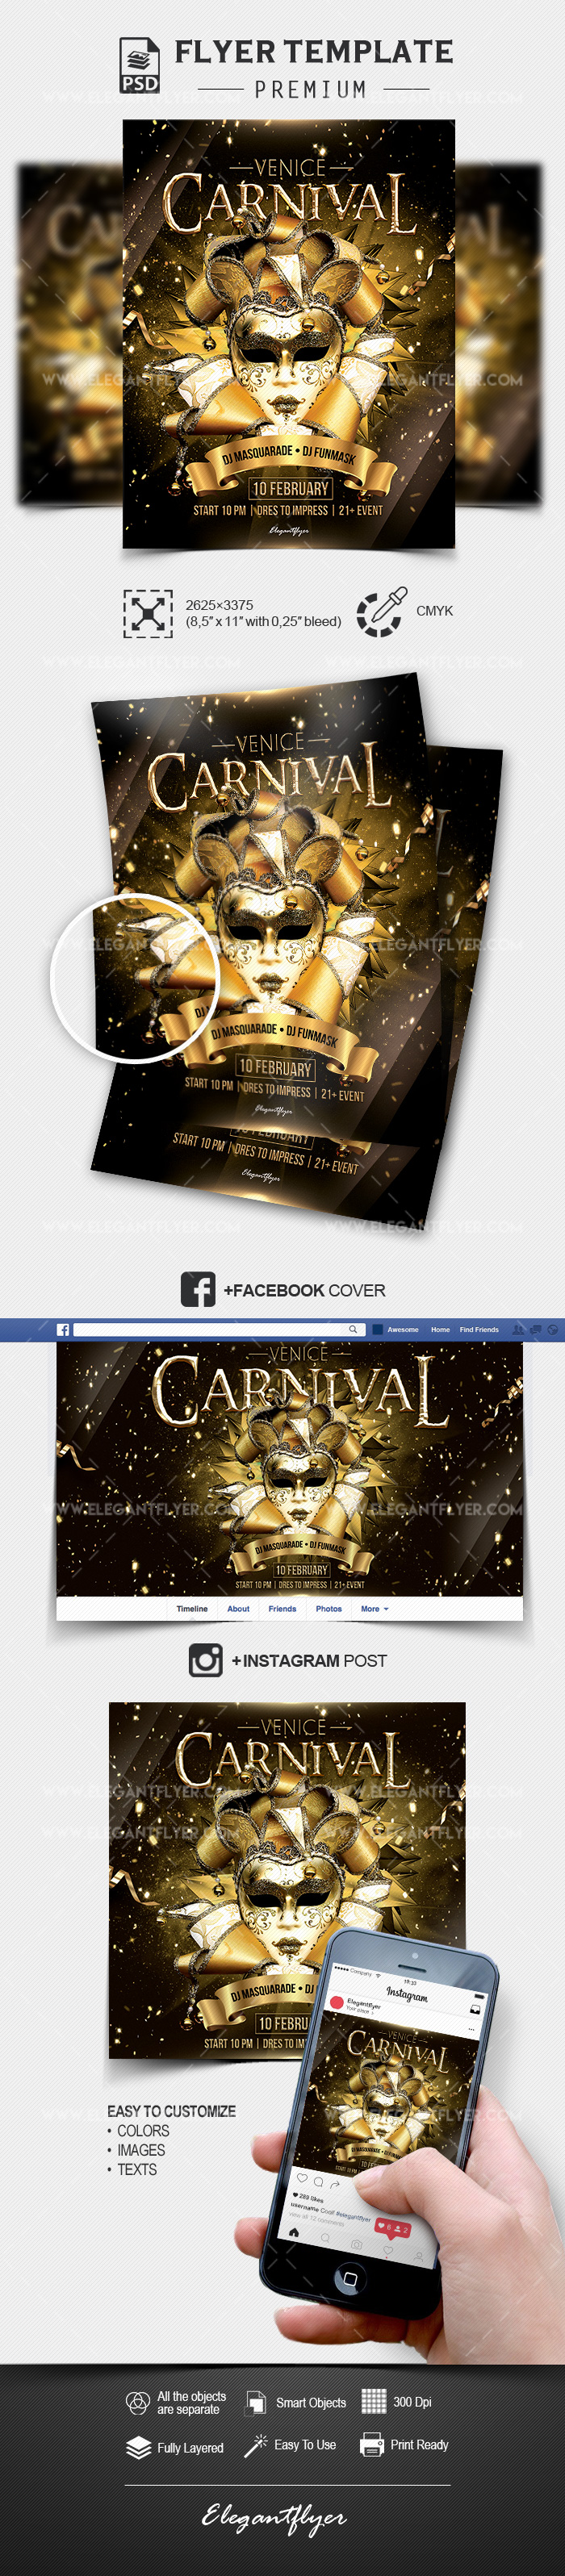 Venice Carnival – PSD Flyer Template + Facebook Cover + Instagram Post